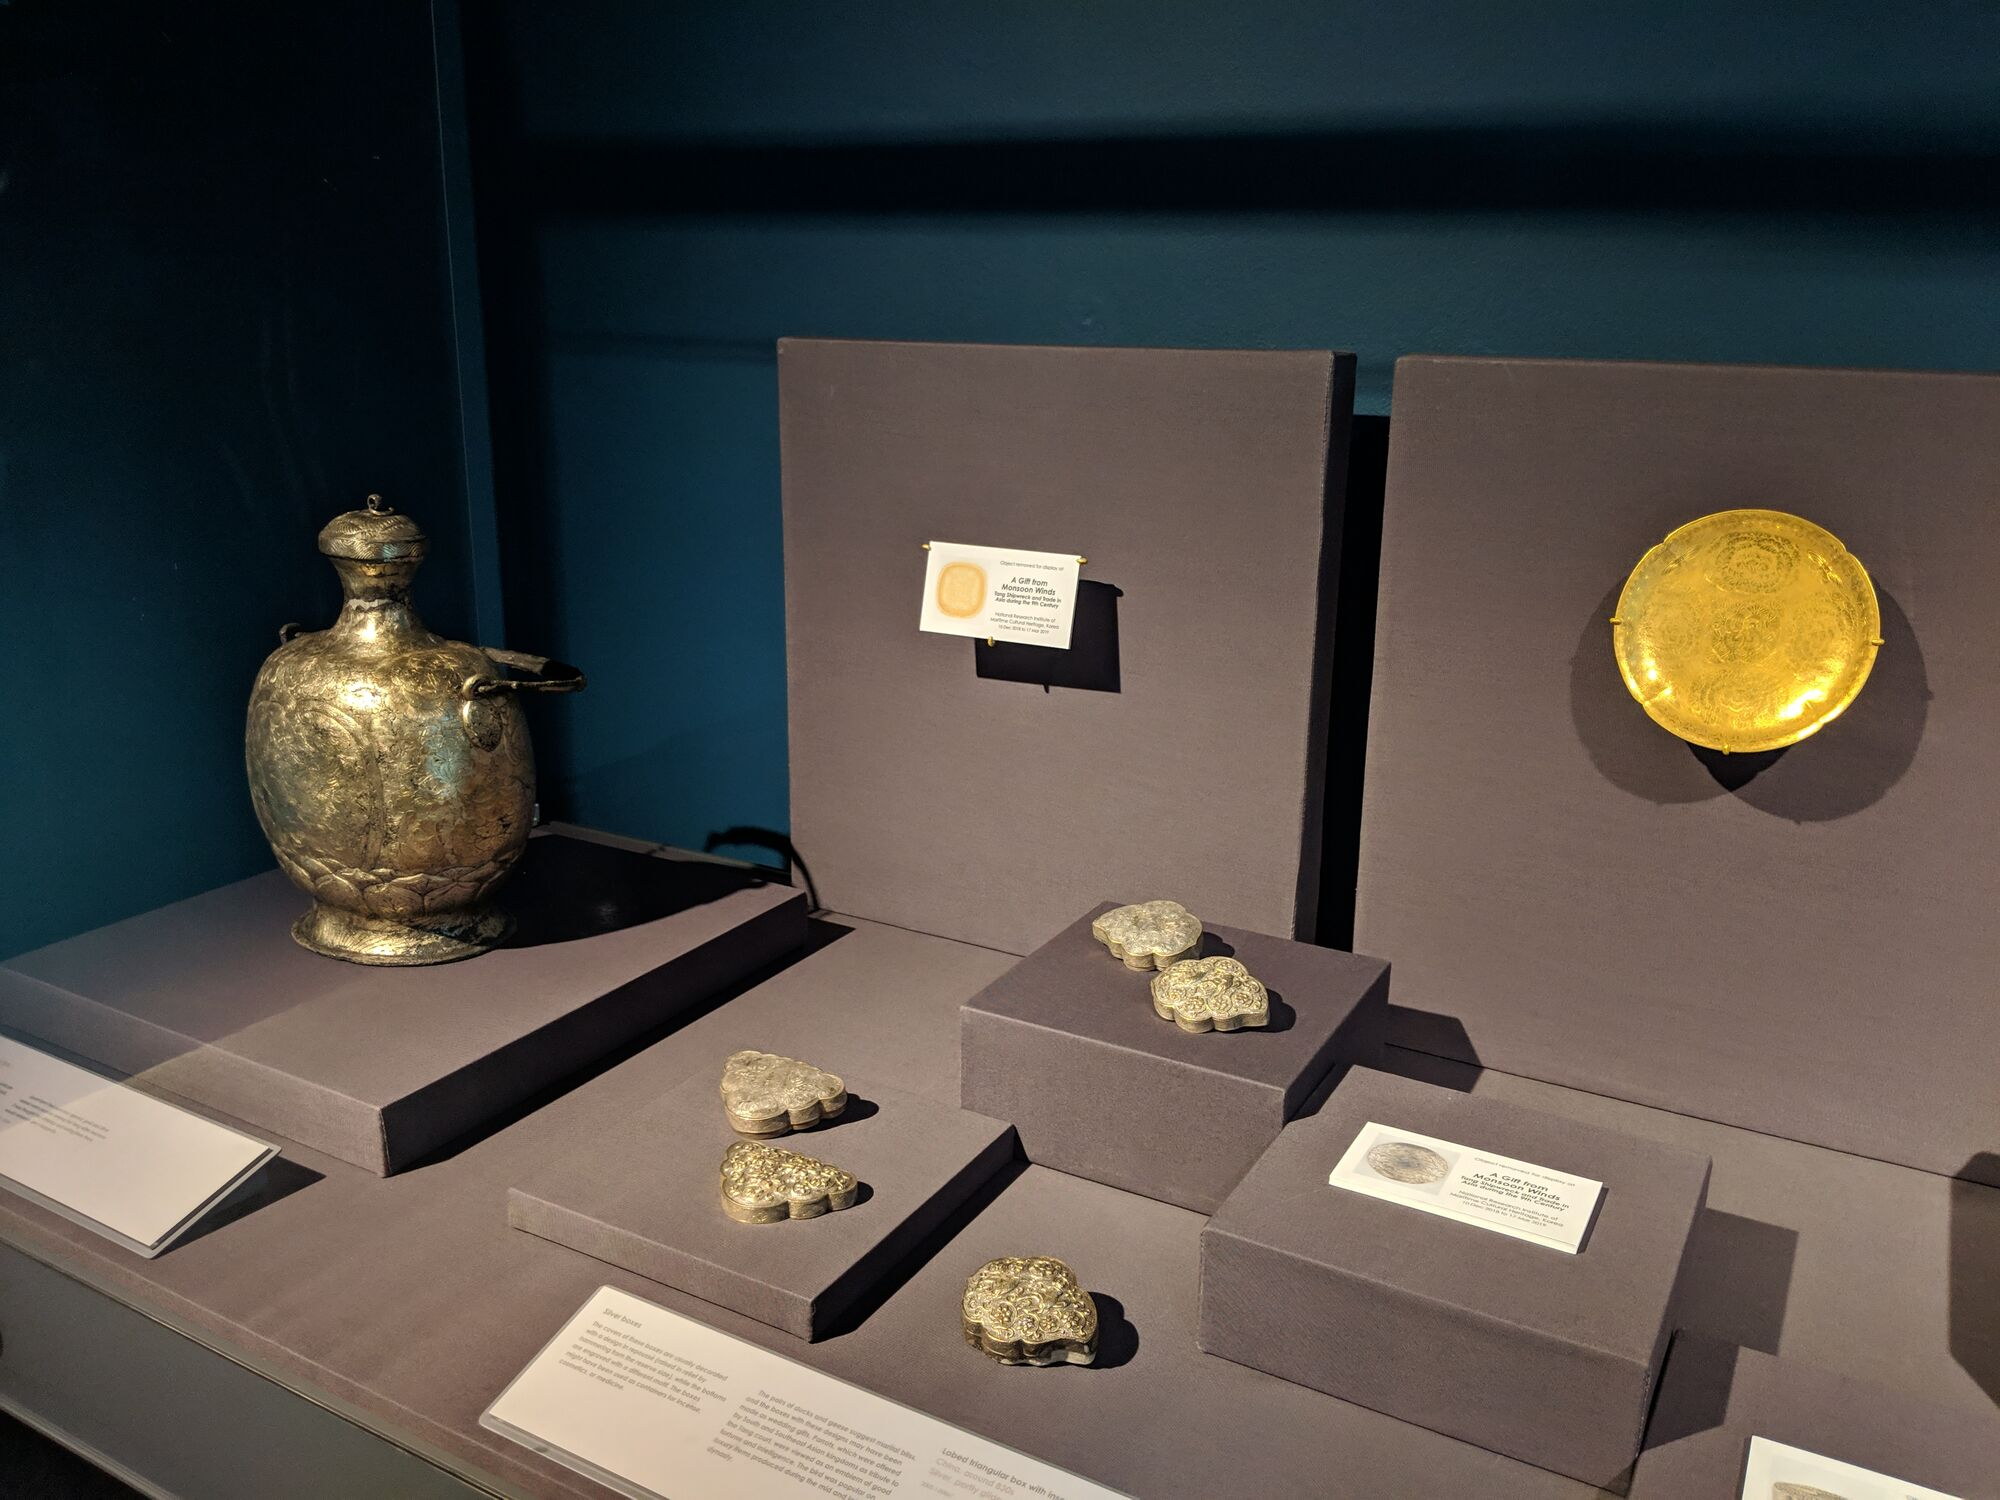 Silver boxes and Gold items